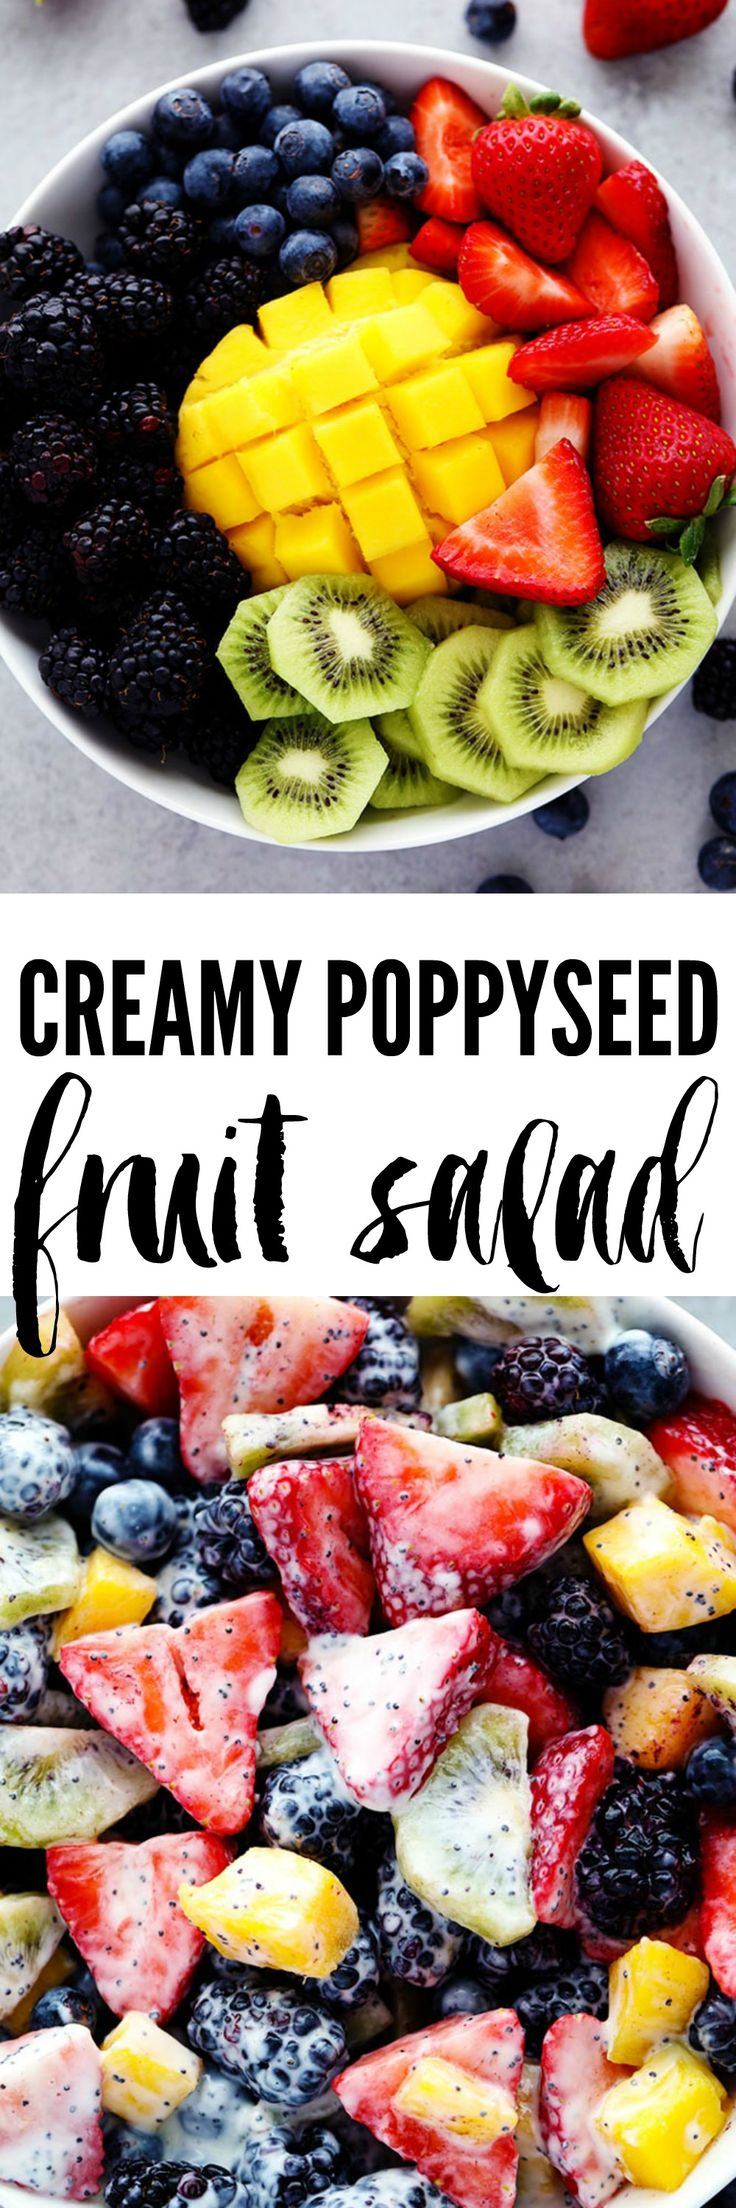 Creamy Poppyseed Fruit Salad is made with delicious mouthwatering fruit and tossed in a creamy poppyseed dressing. This will be a hit at your next potluck!